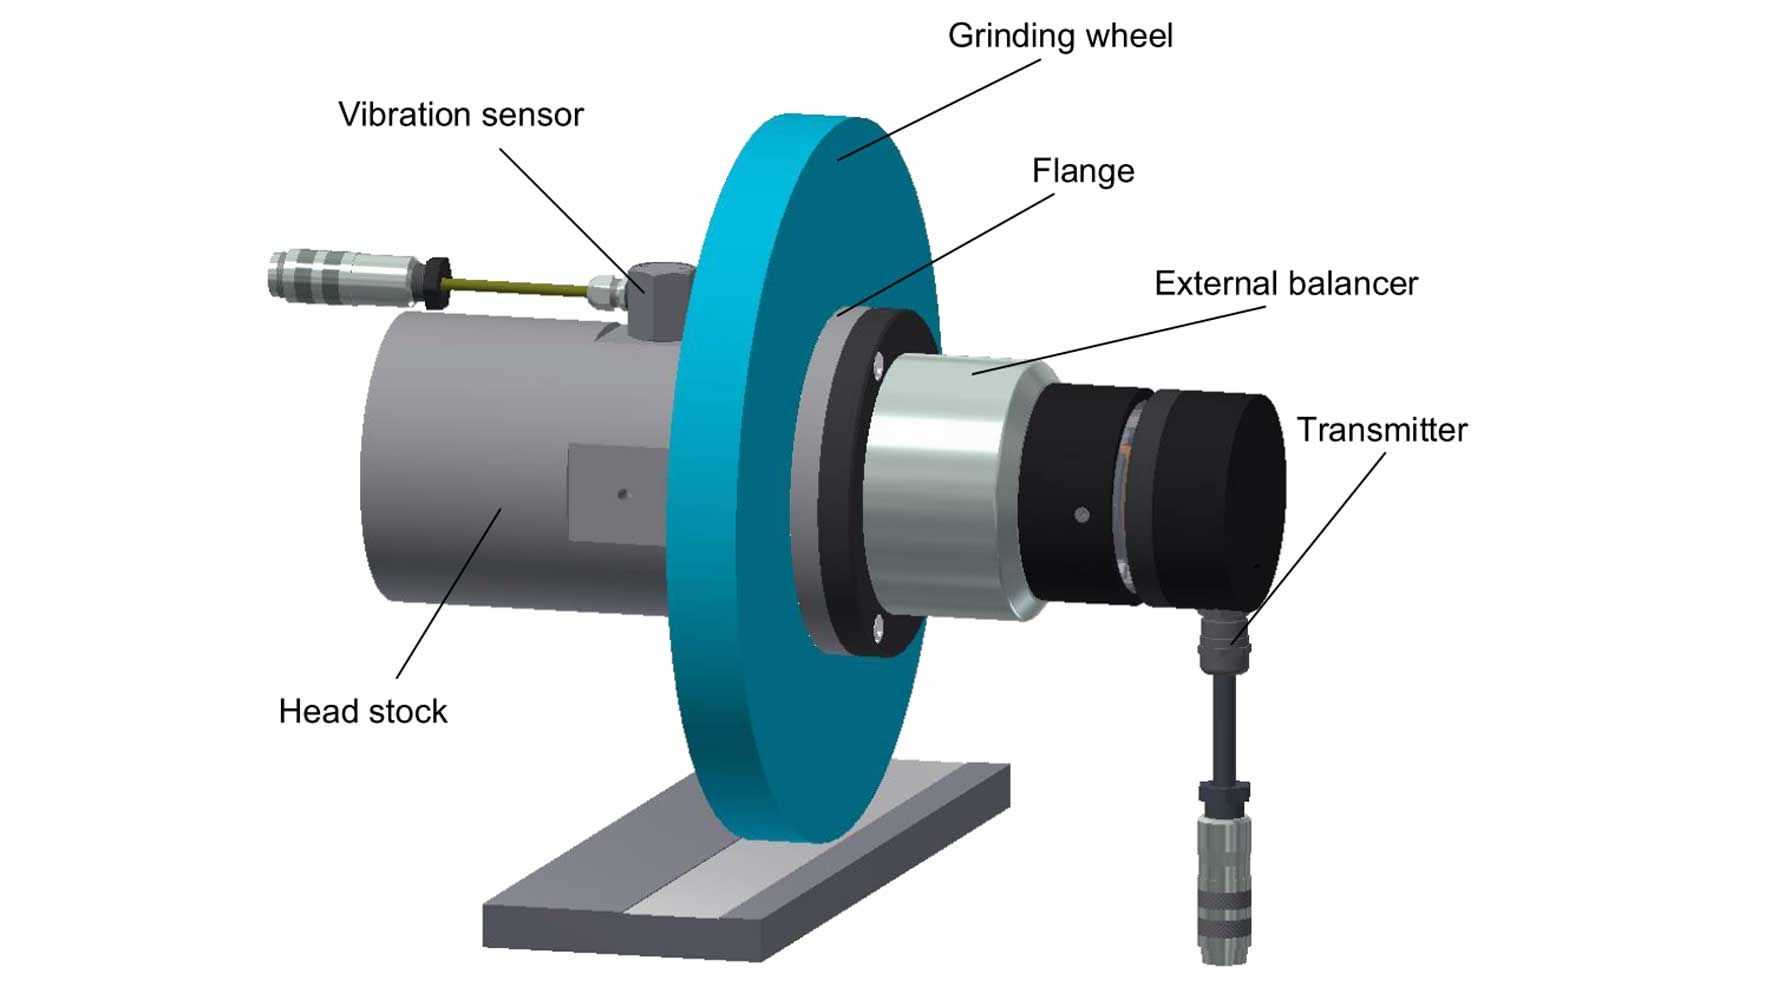 How To Make Static Balance Of The Grinding Wheel Forture Tools Blog Pictures Grind Table Fan